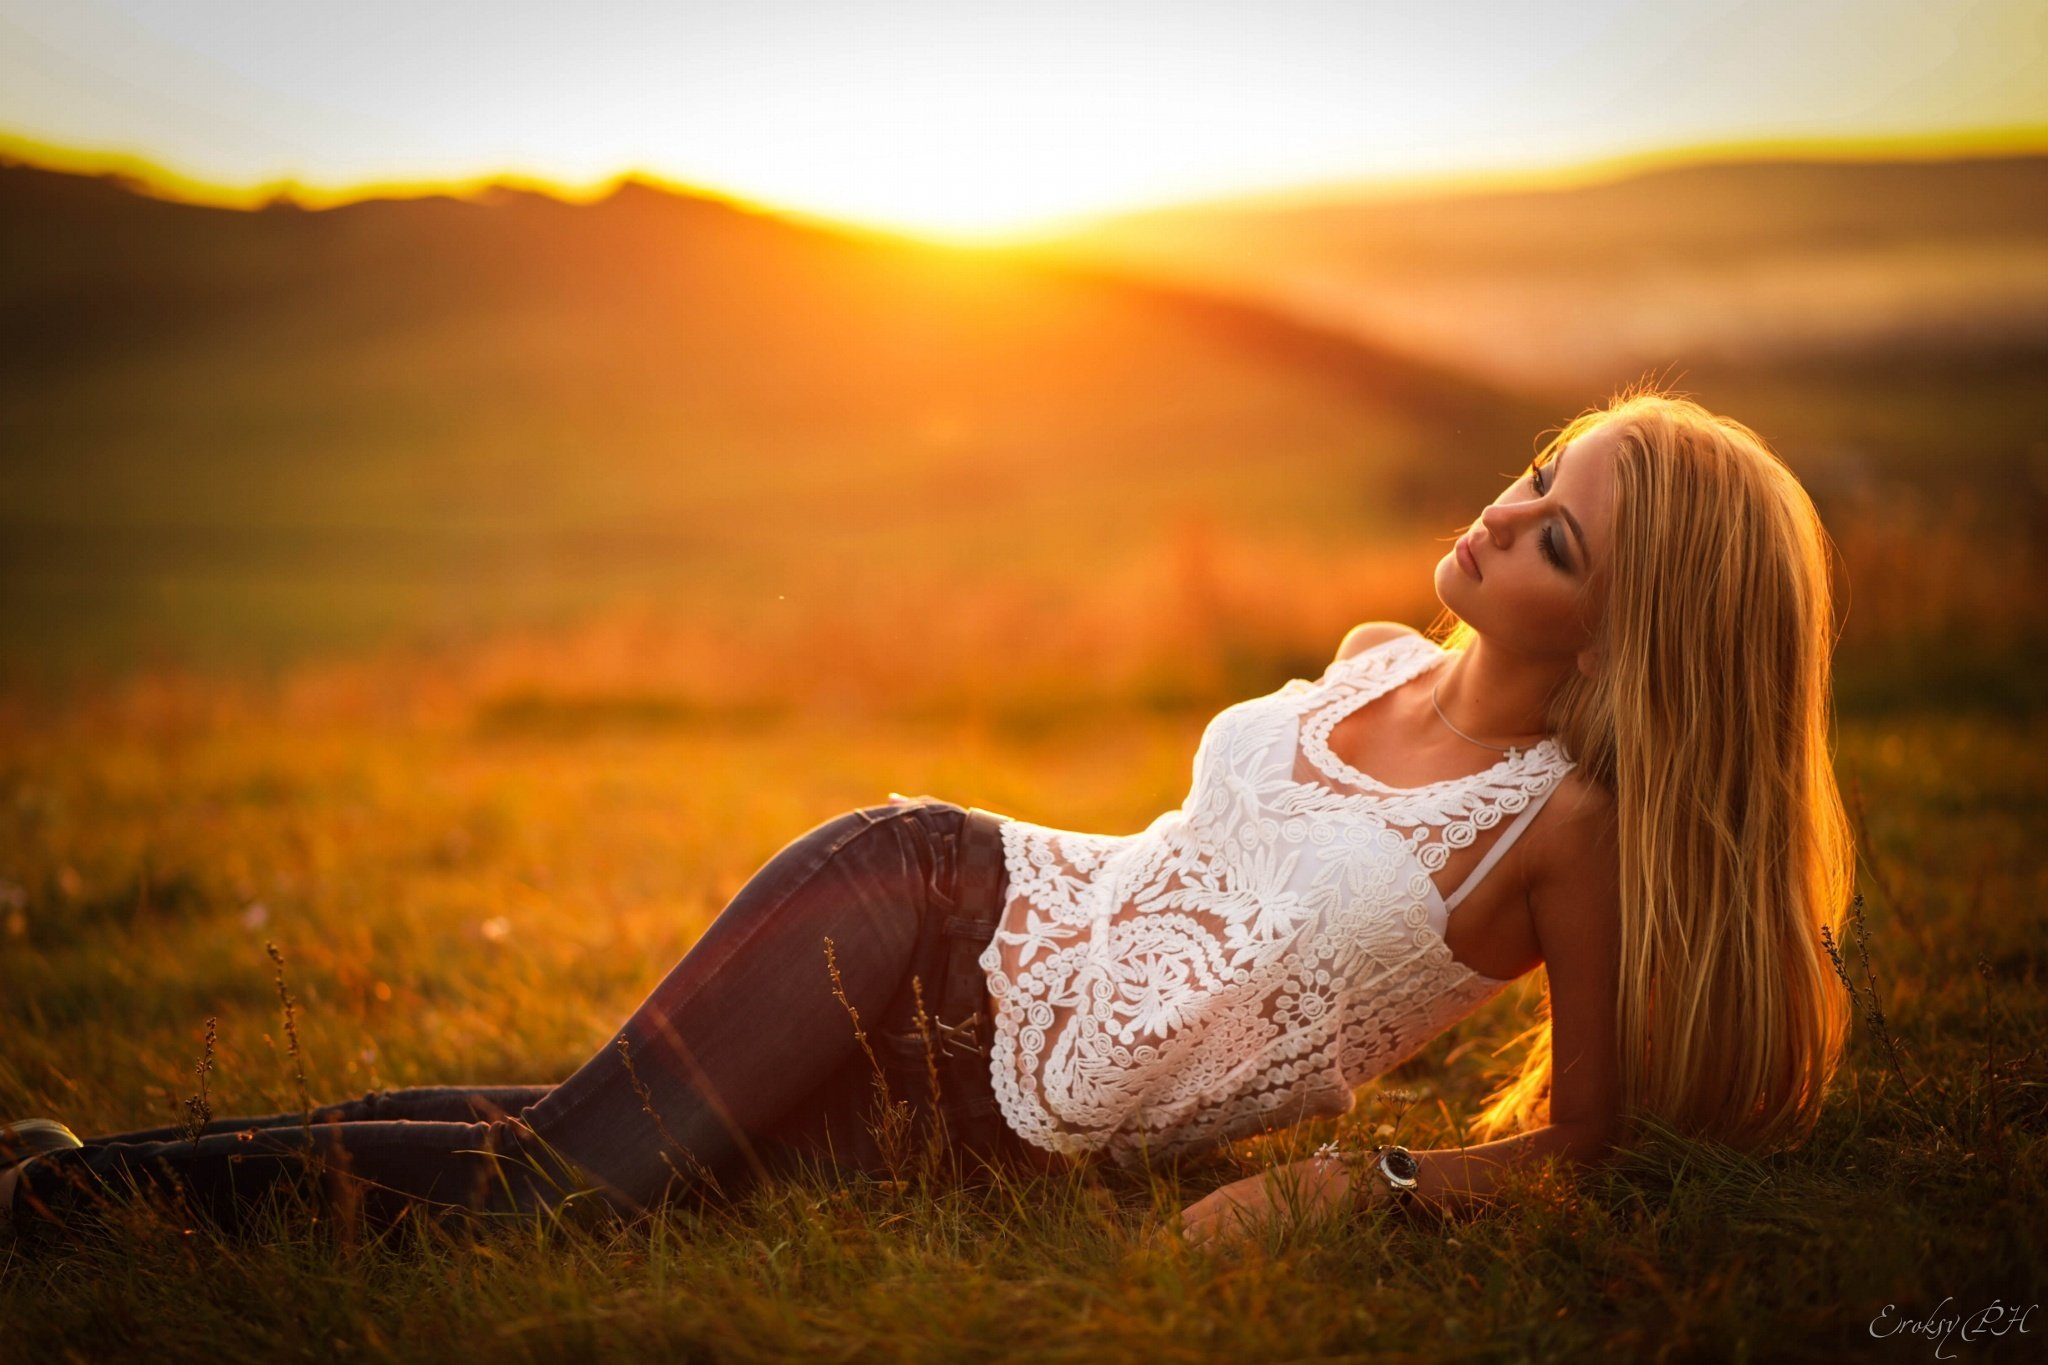 Blonde Girl In The Woods Wallpapers Maria Girl Model Sunset View Fashion Hair Blonde Lies